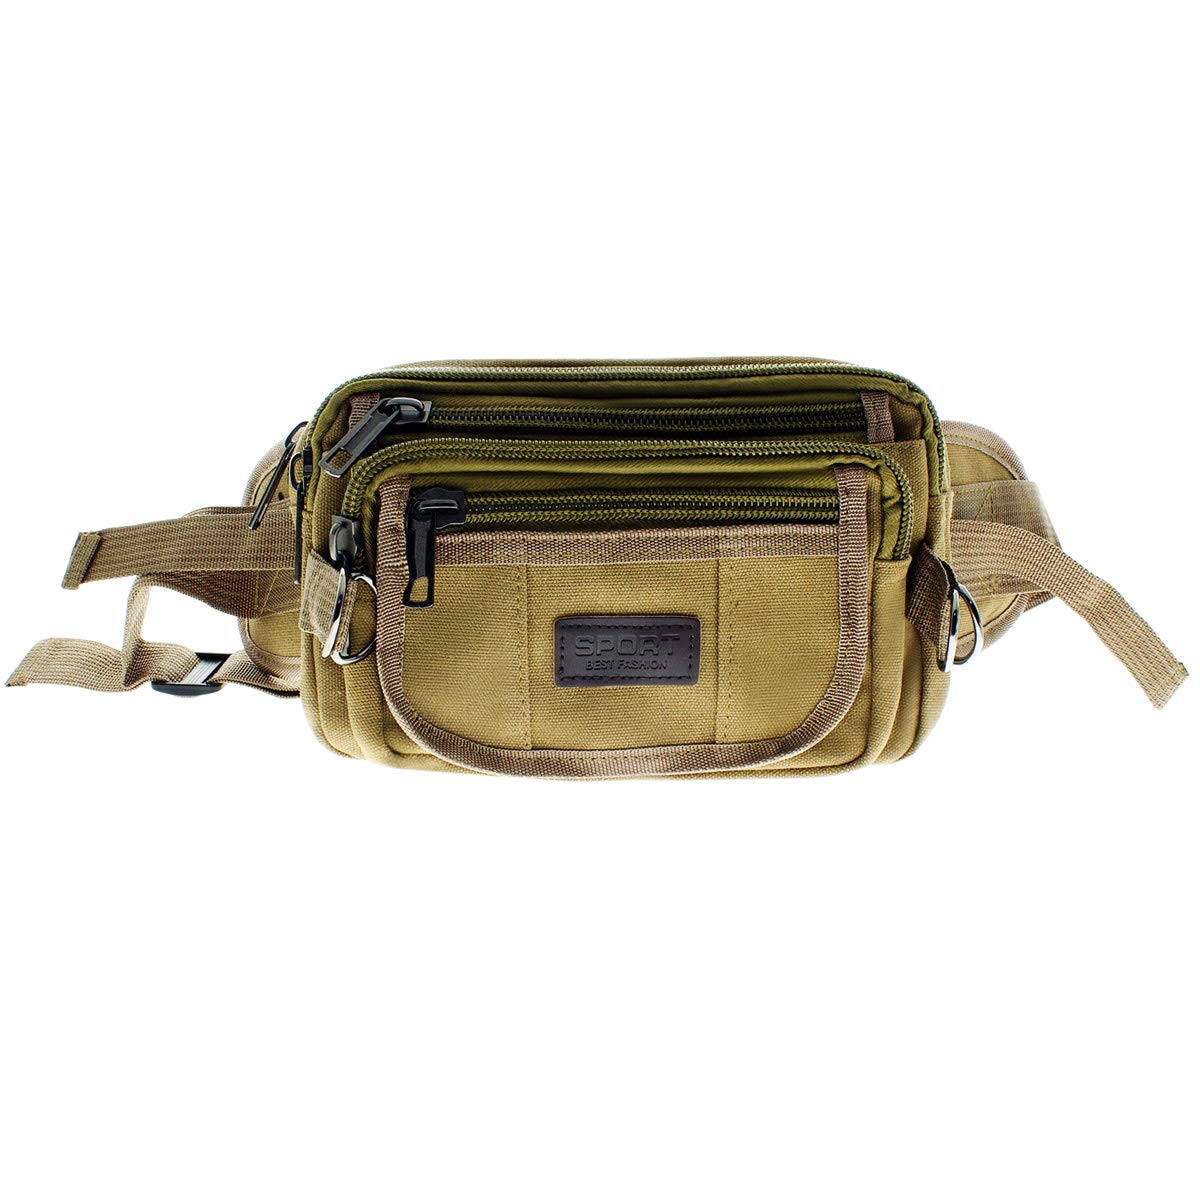 Canvas Waist Bag Waist Tactical Mens Bum Bag for Outdoors Travel Belt Bag 9216 Money Belt Bags Fanny Pack Bag for Men and Women